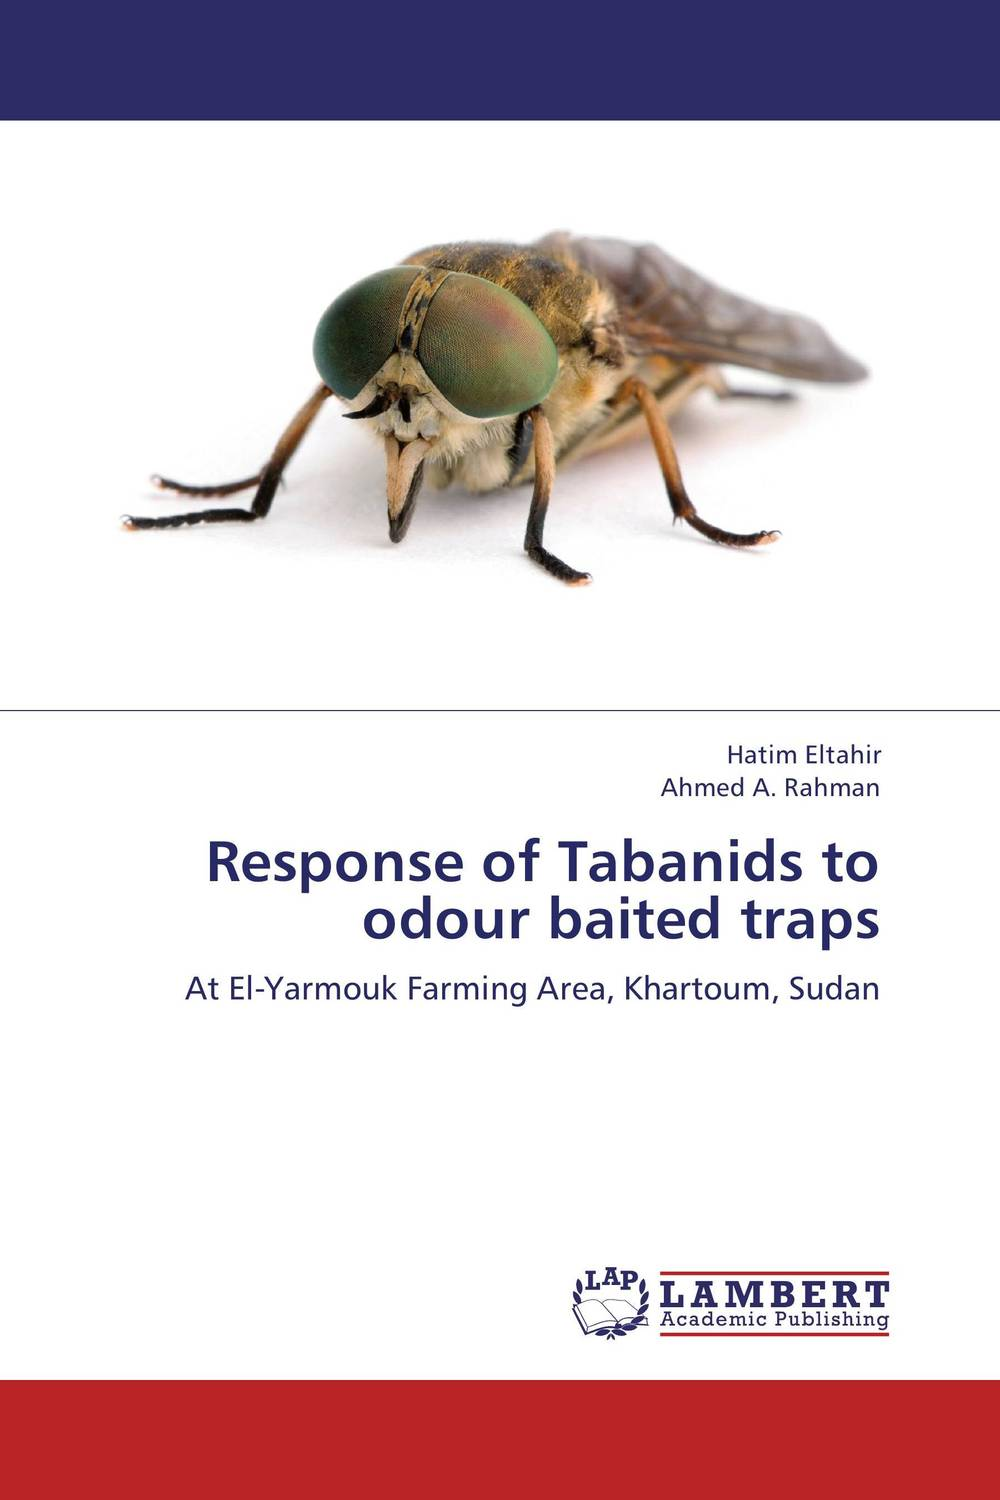 Response of Tabanids to odour baited traps phlebotomine sand flies of central sudan